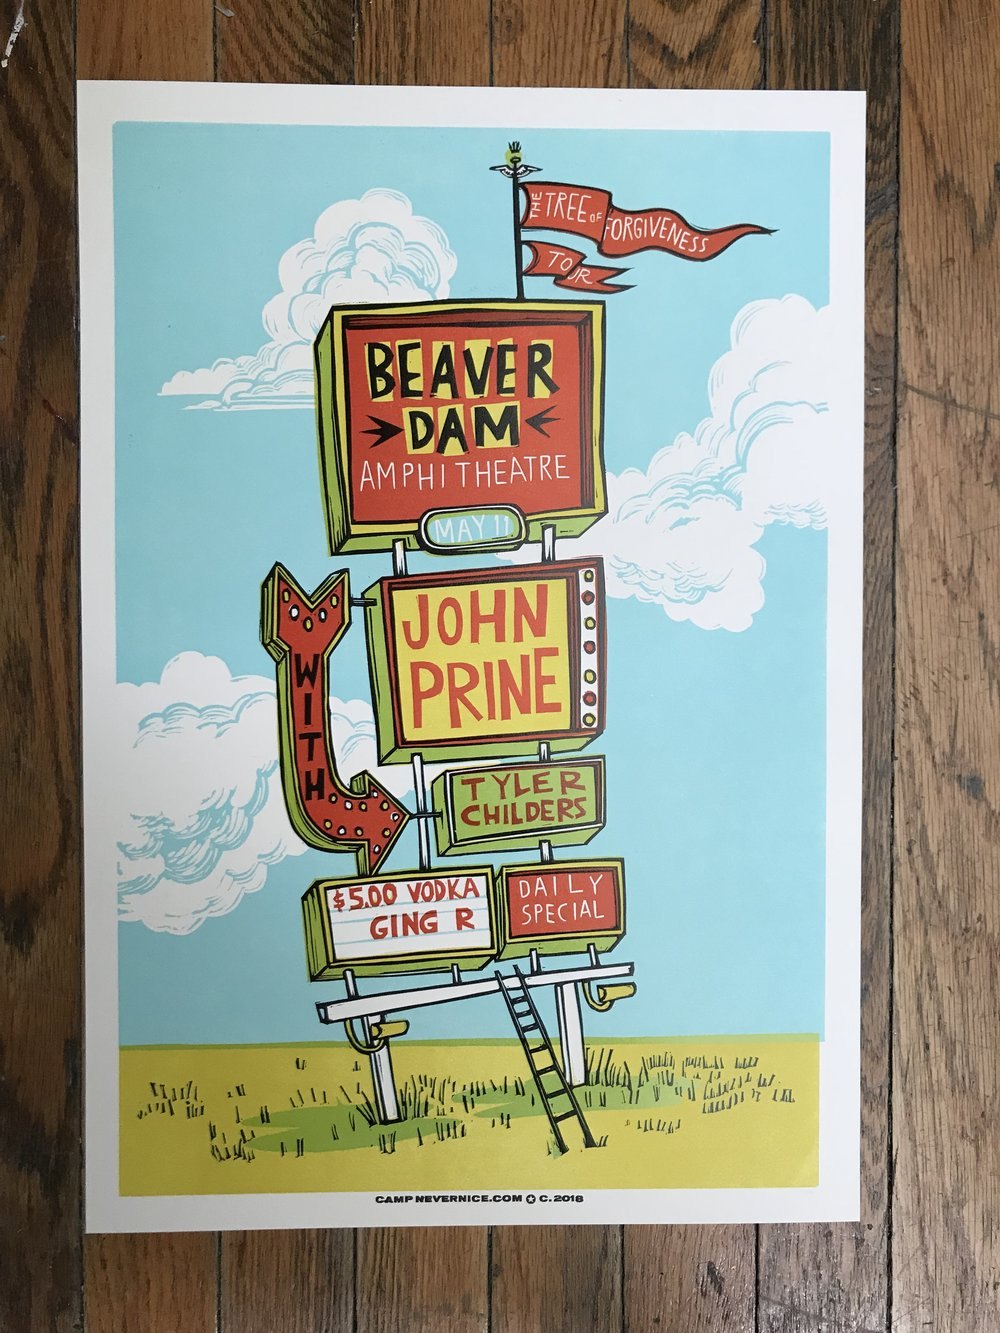 John Prine and Tyler Childers  - Performing at Beaver Dam Amphitheatre in Beaver Dam, Kentucky on May 11, 2018.